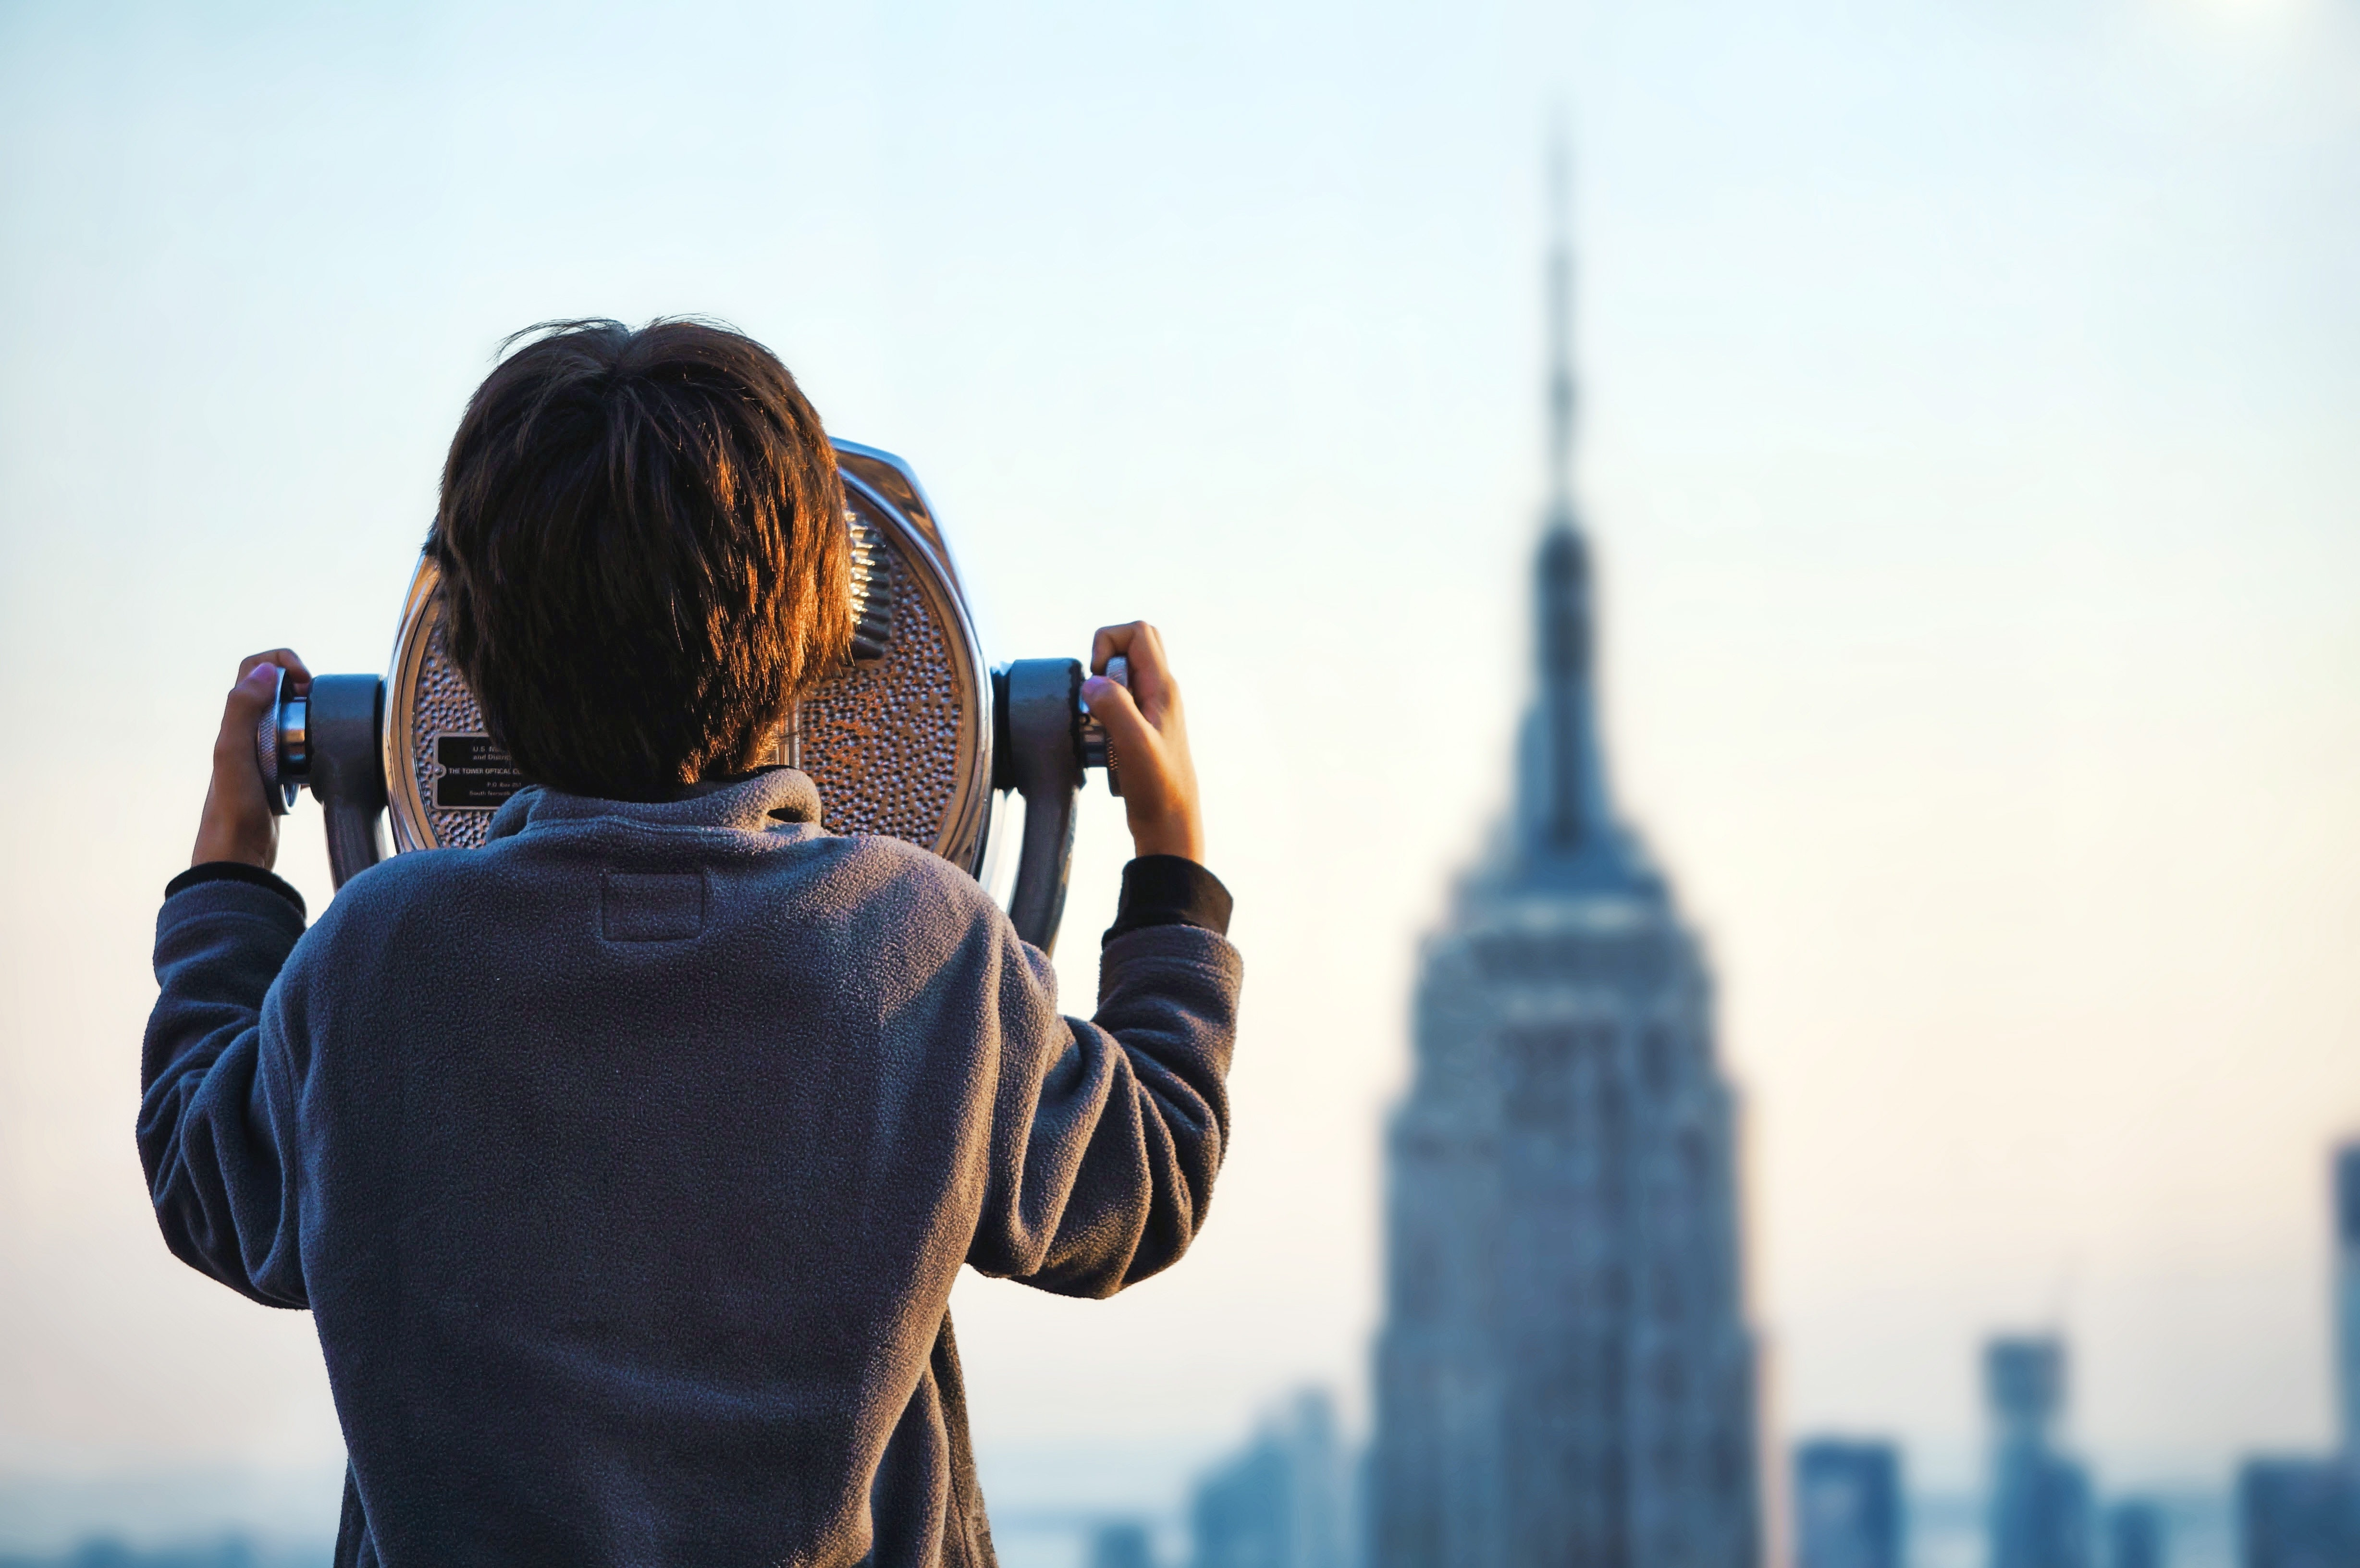 A boy looking at the Empire State Building